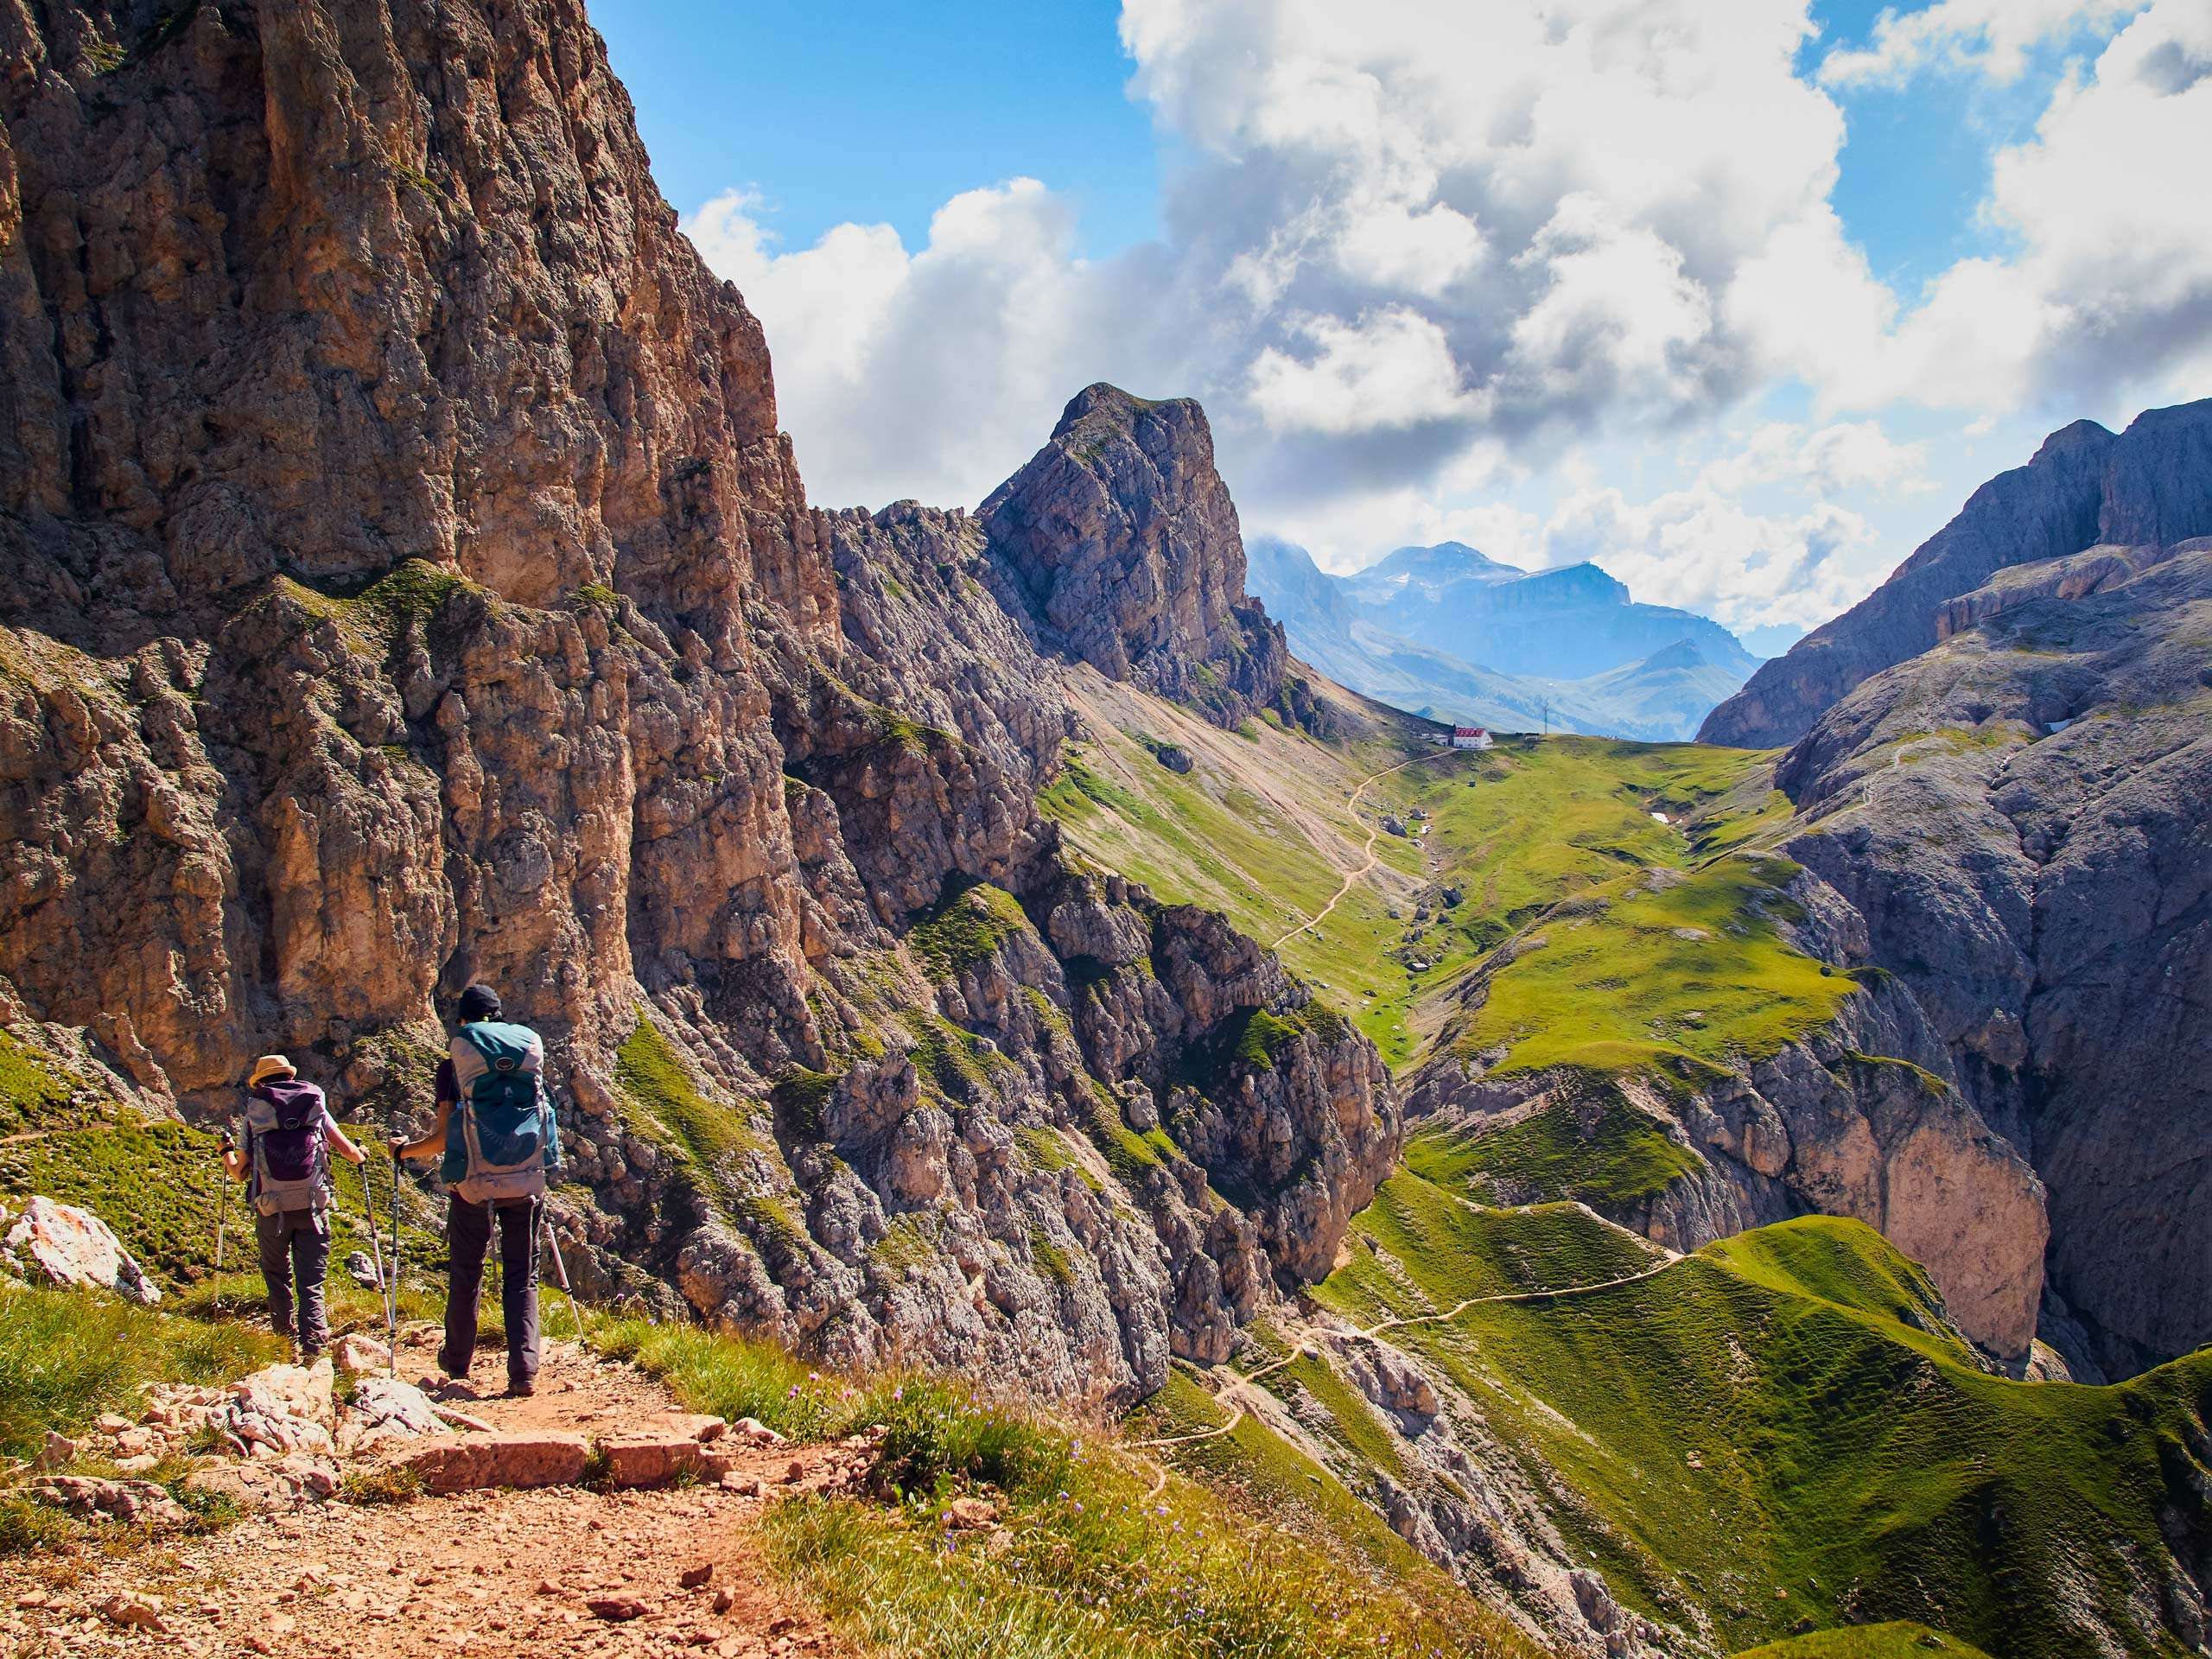 Backpackers trekking through hills and canyons